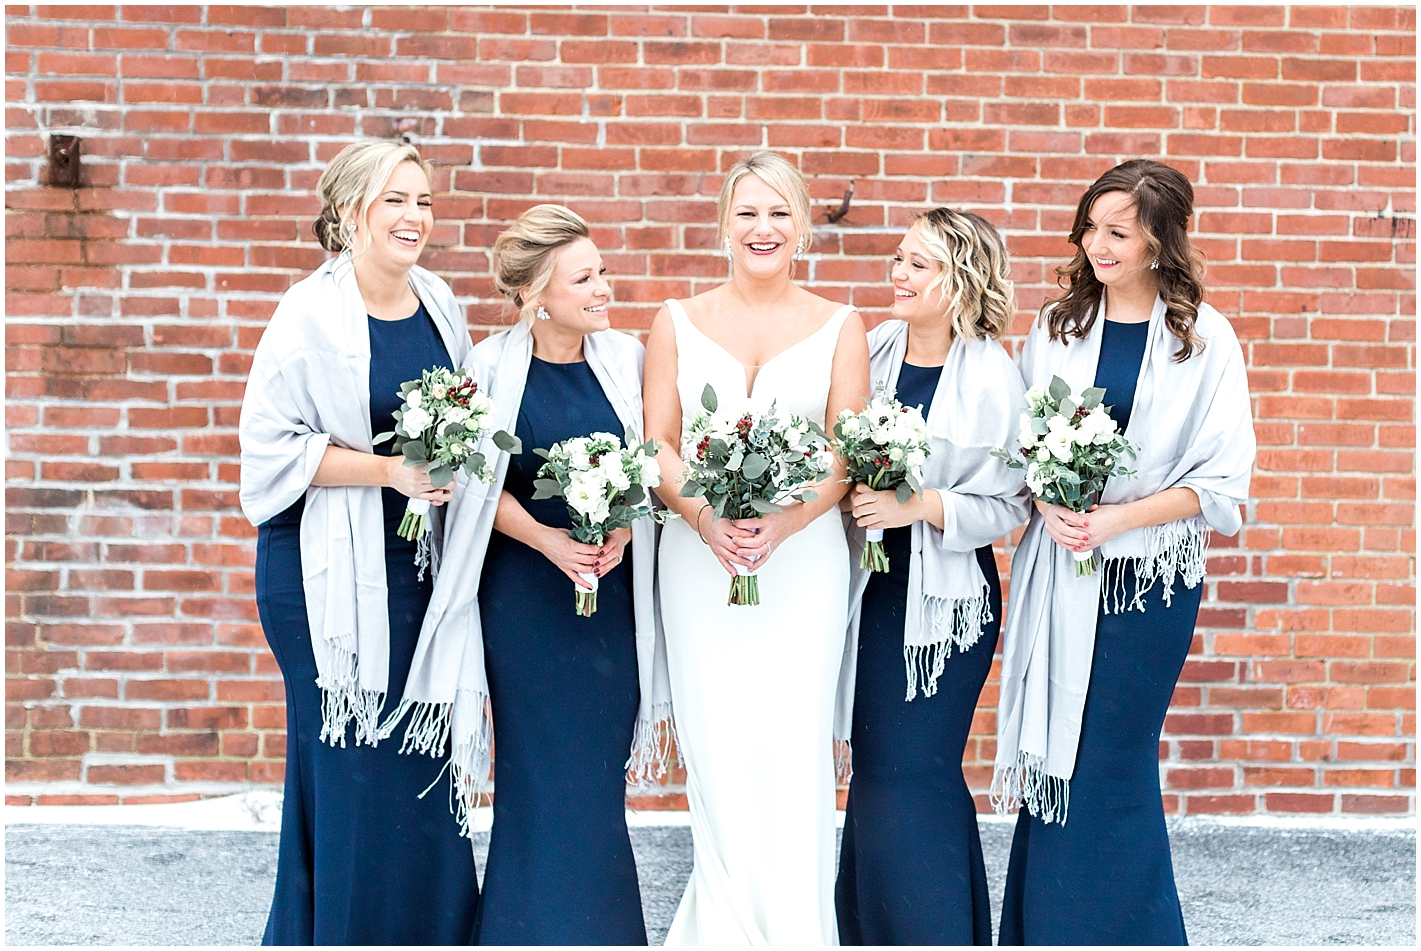 Winter Bridesmaids attire Photo by Alyssa Parker Photography